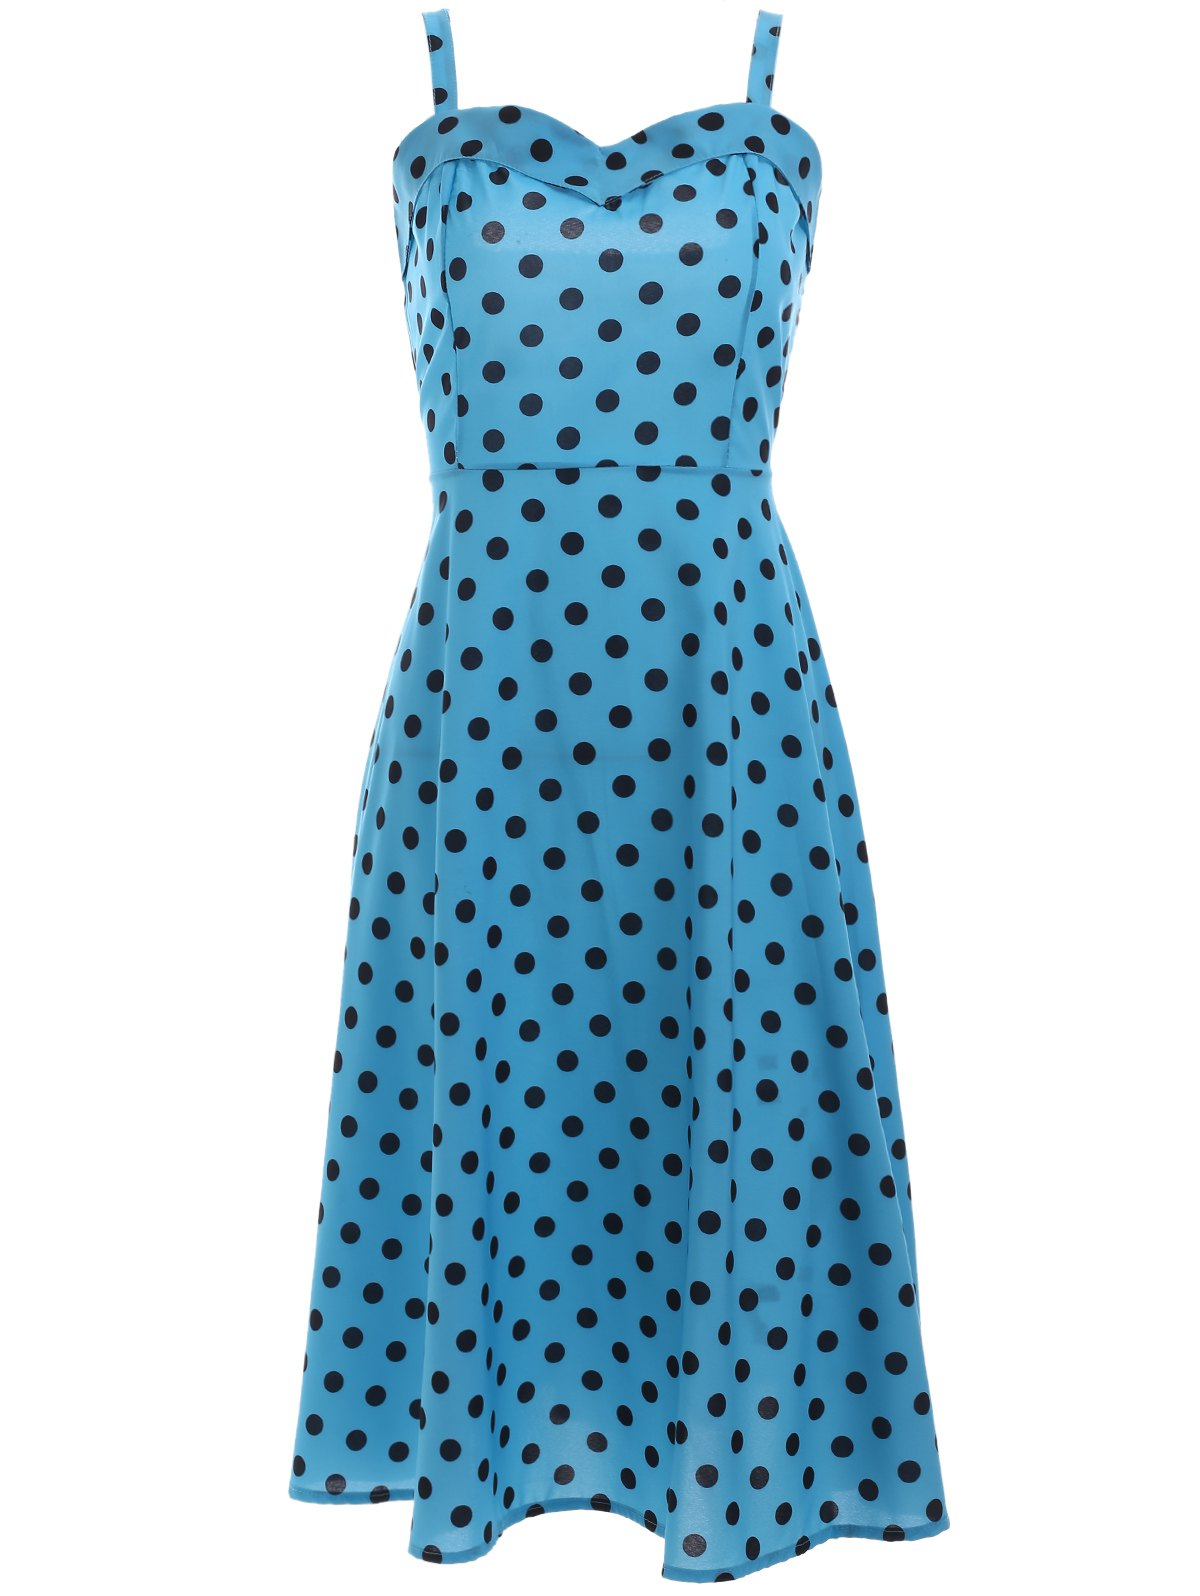 Vintage Style Sweetheart Neck Polka Dot Dress